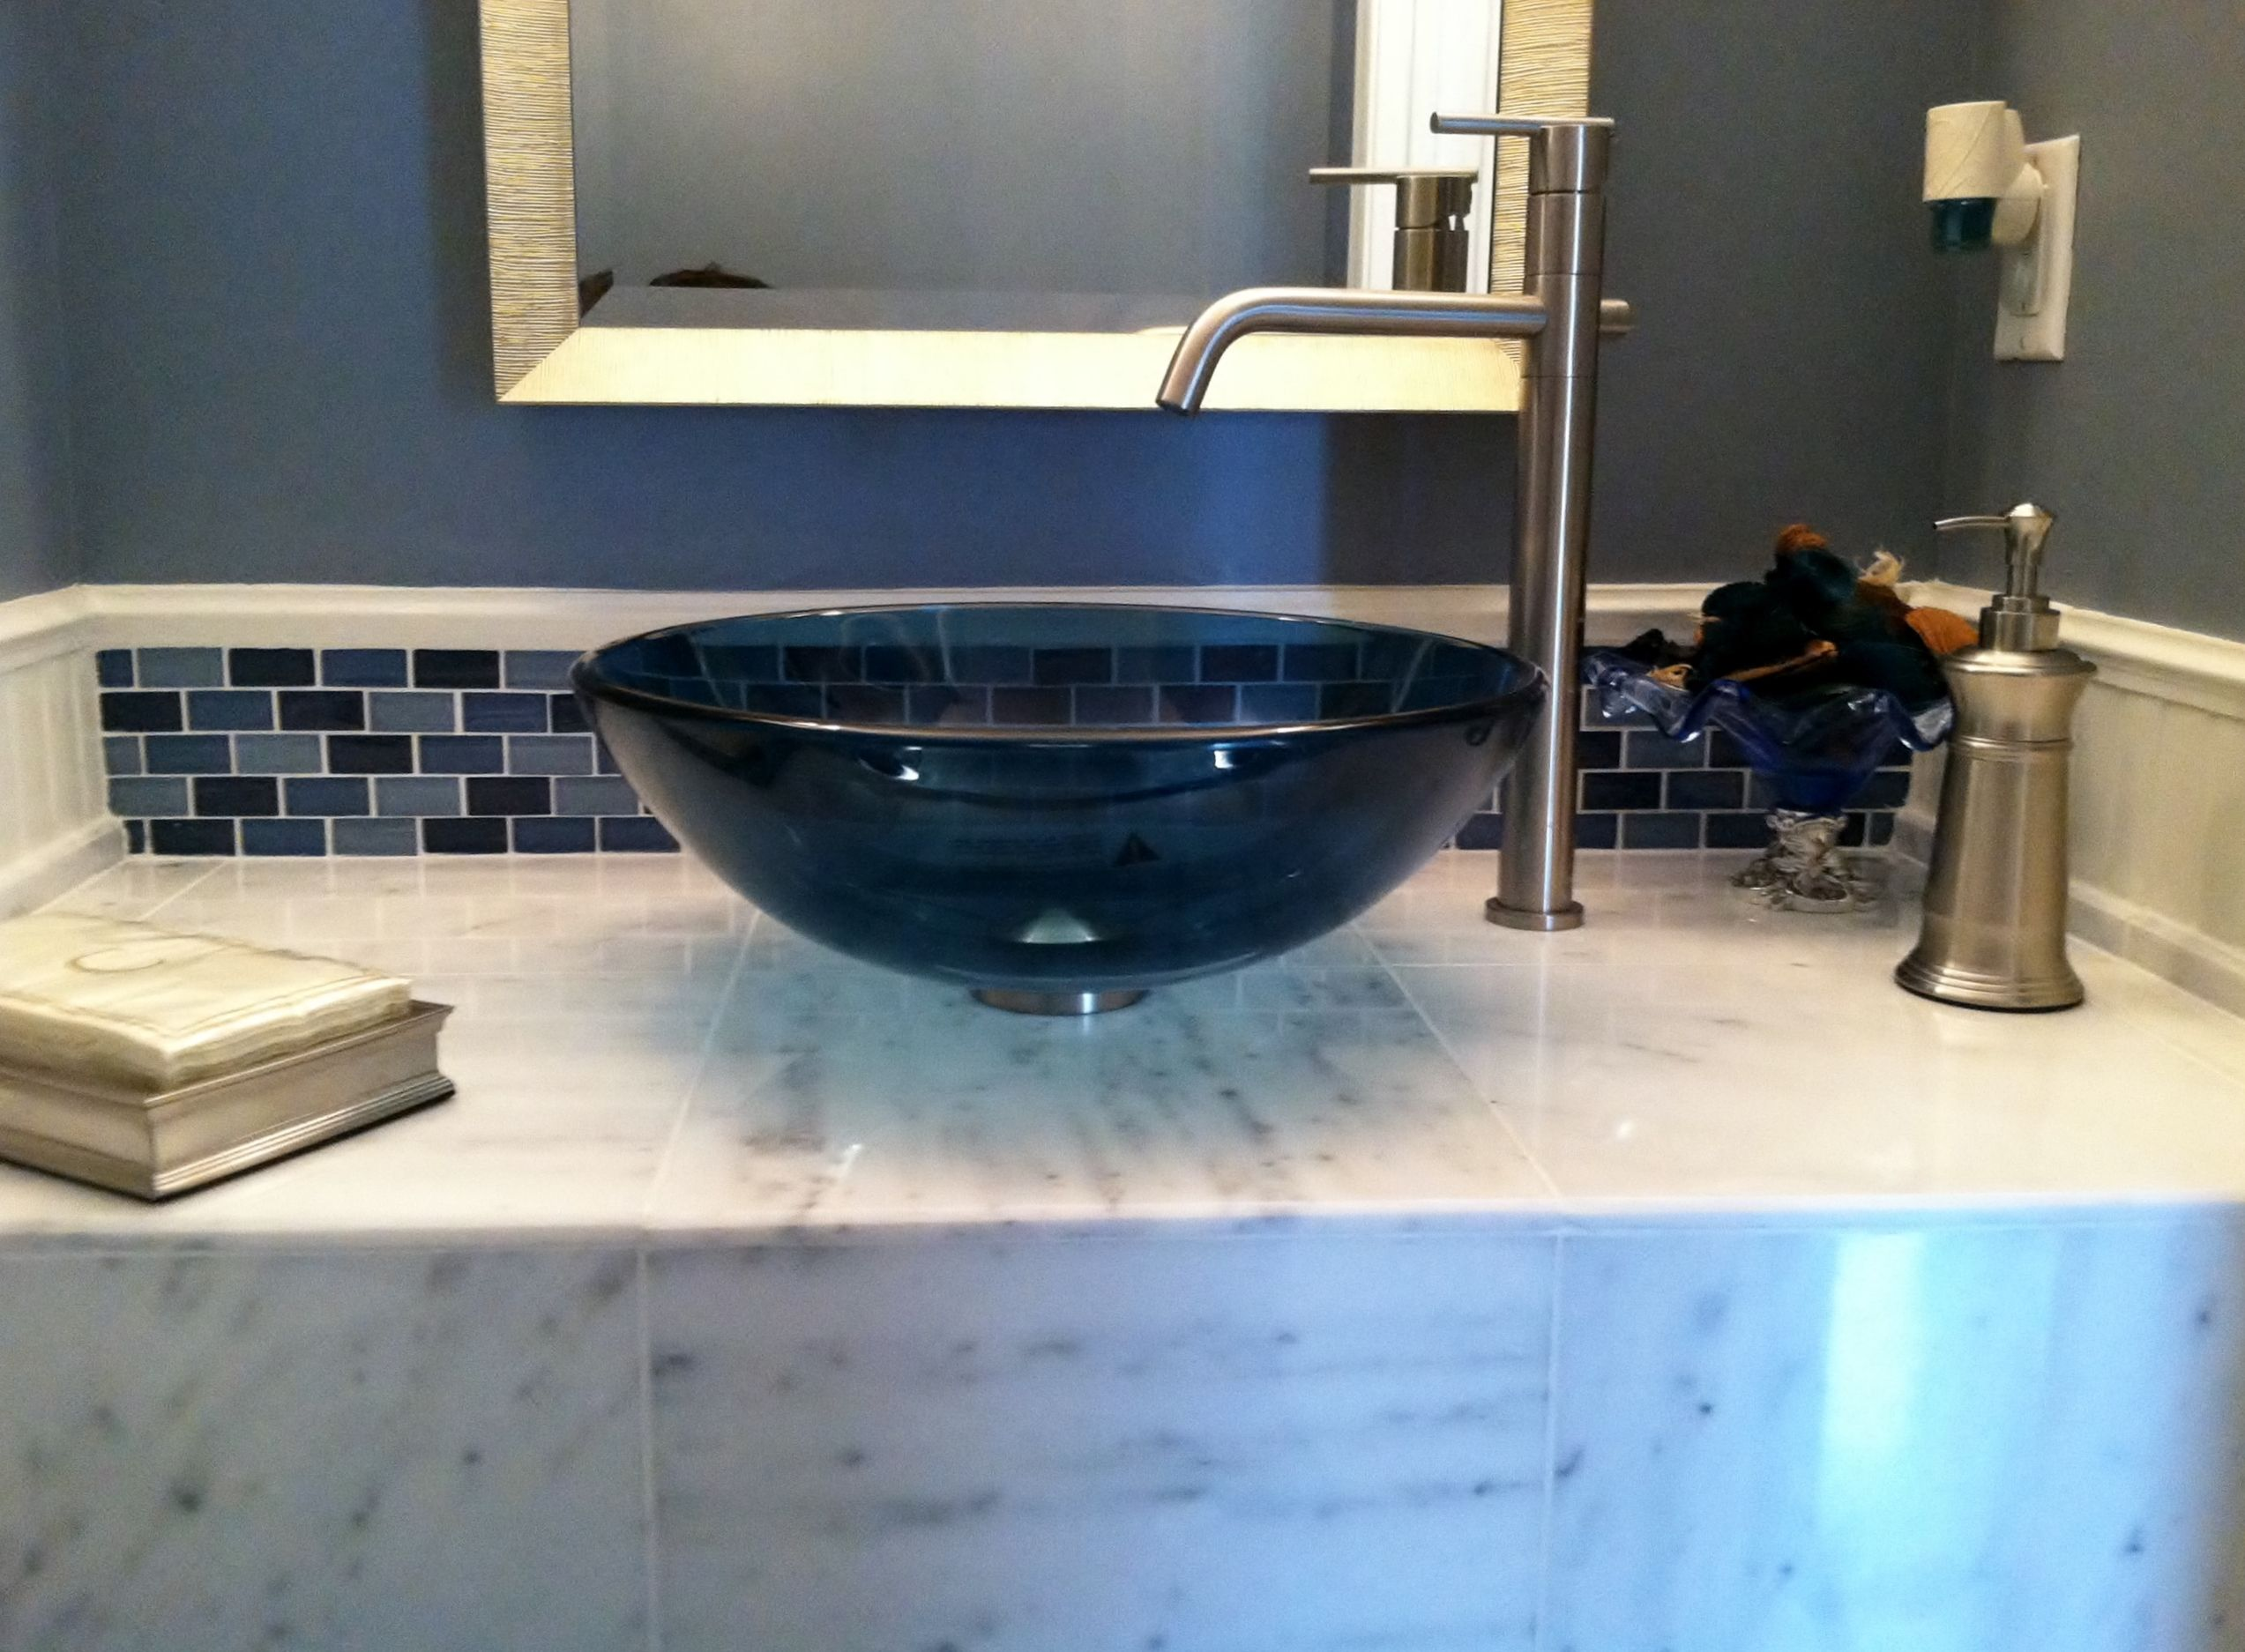 Glass Tile Backsplash Accent With Blue Glass Sink, Custom Marble Vanity,  Www.goldeninteriors